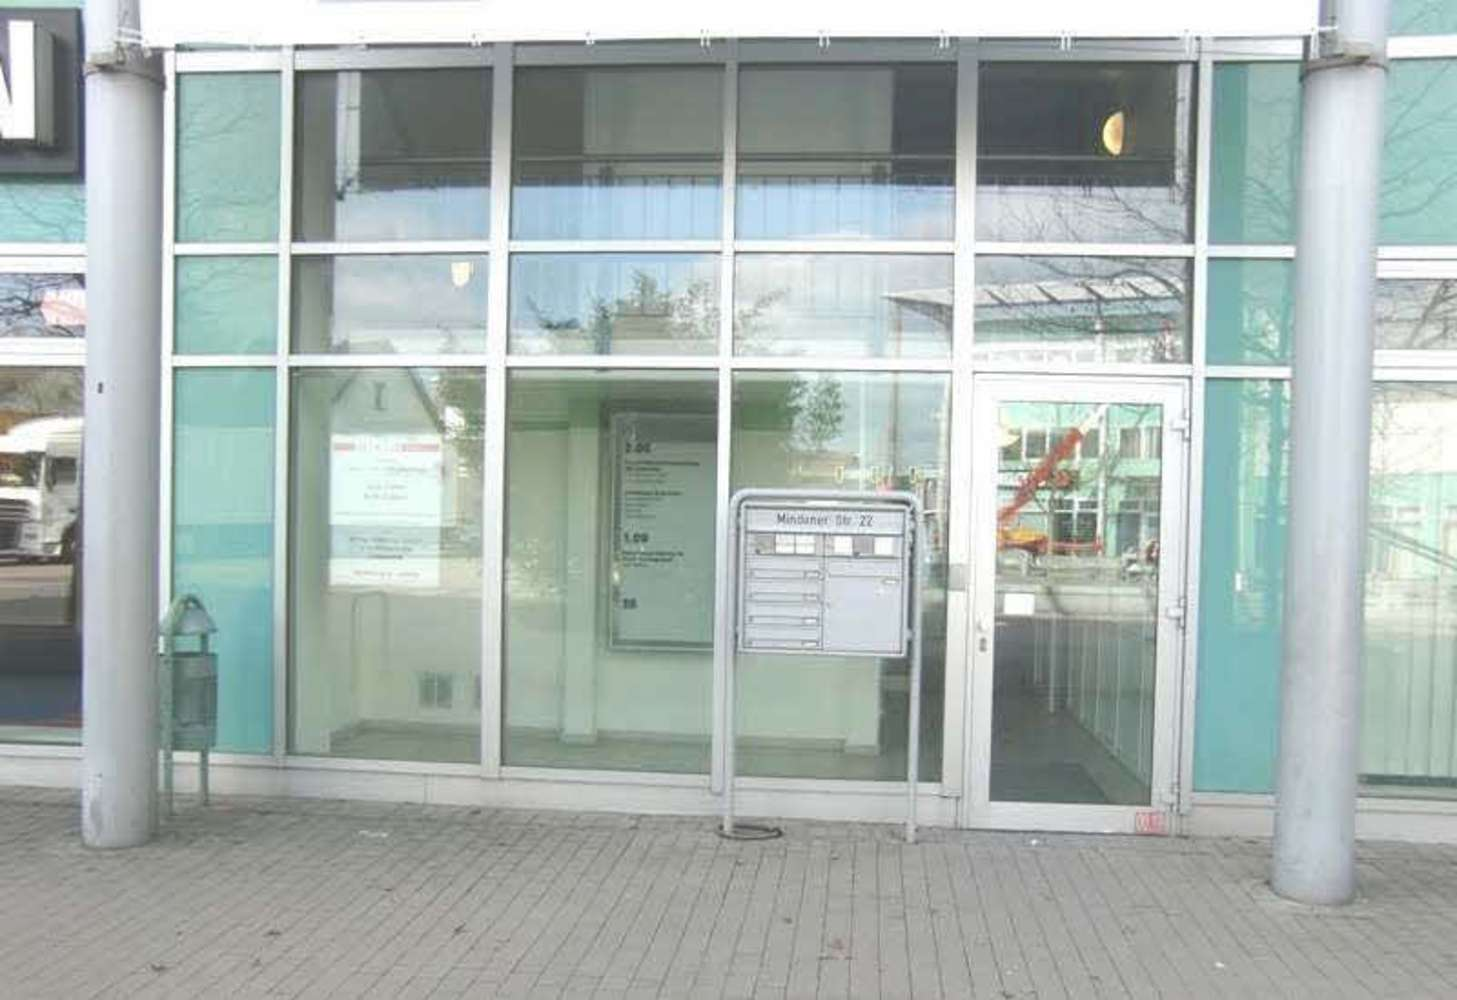 Büros Bad oeynhausen, 32547 - Büro - Bad Oeynhausen - F1350 - 9396882